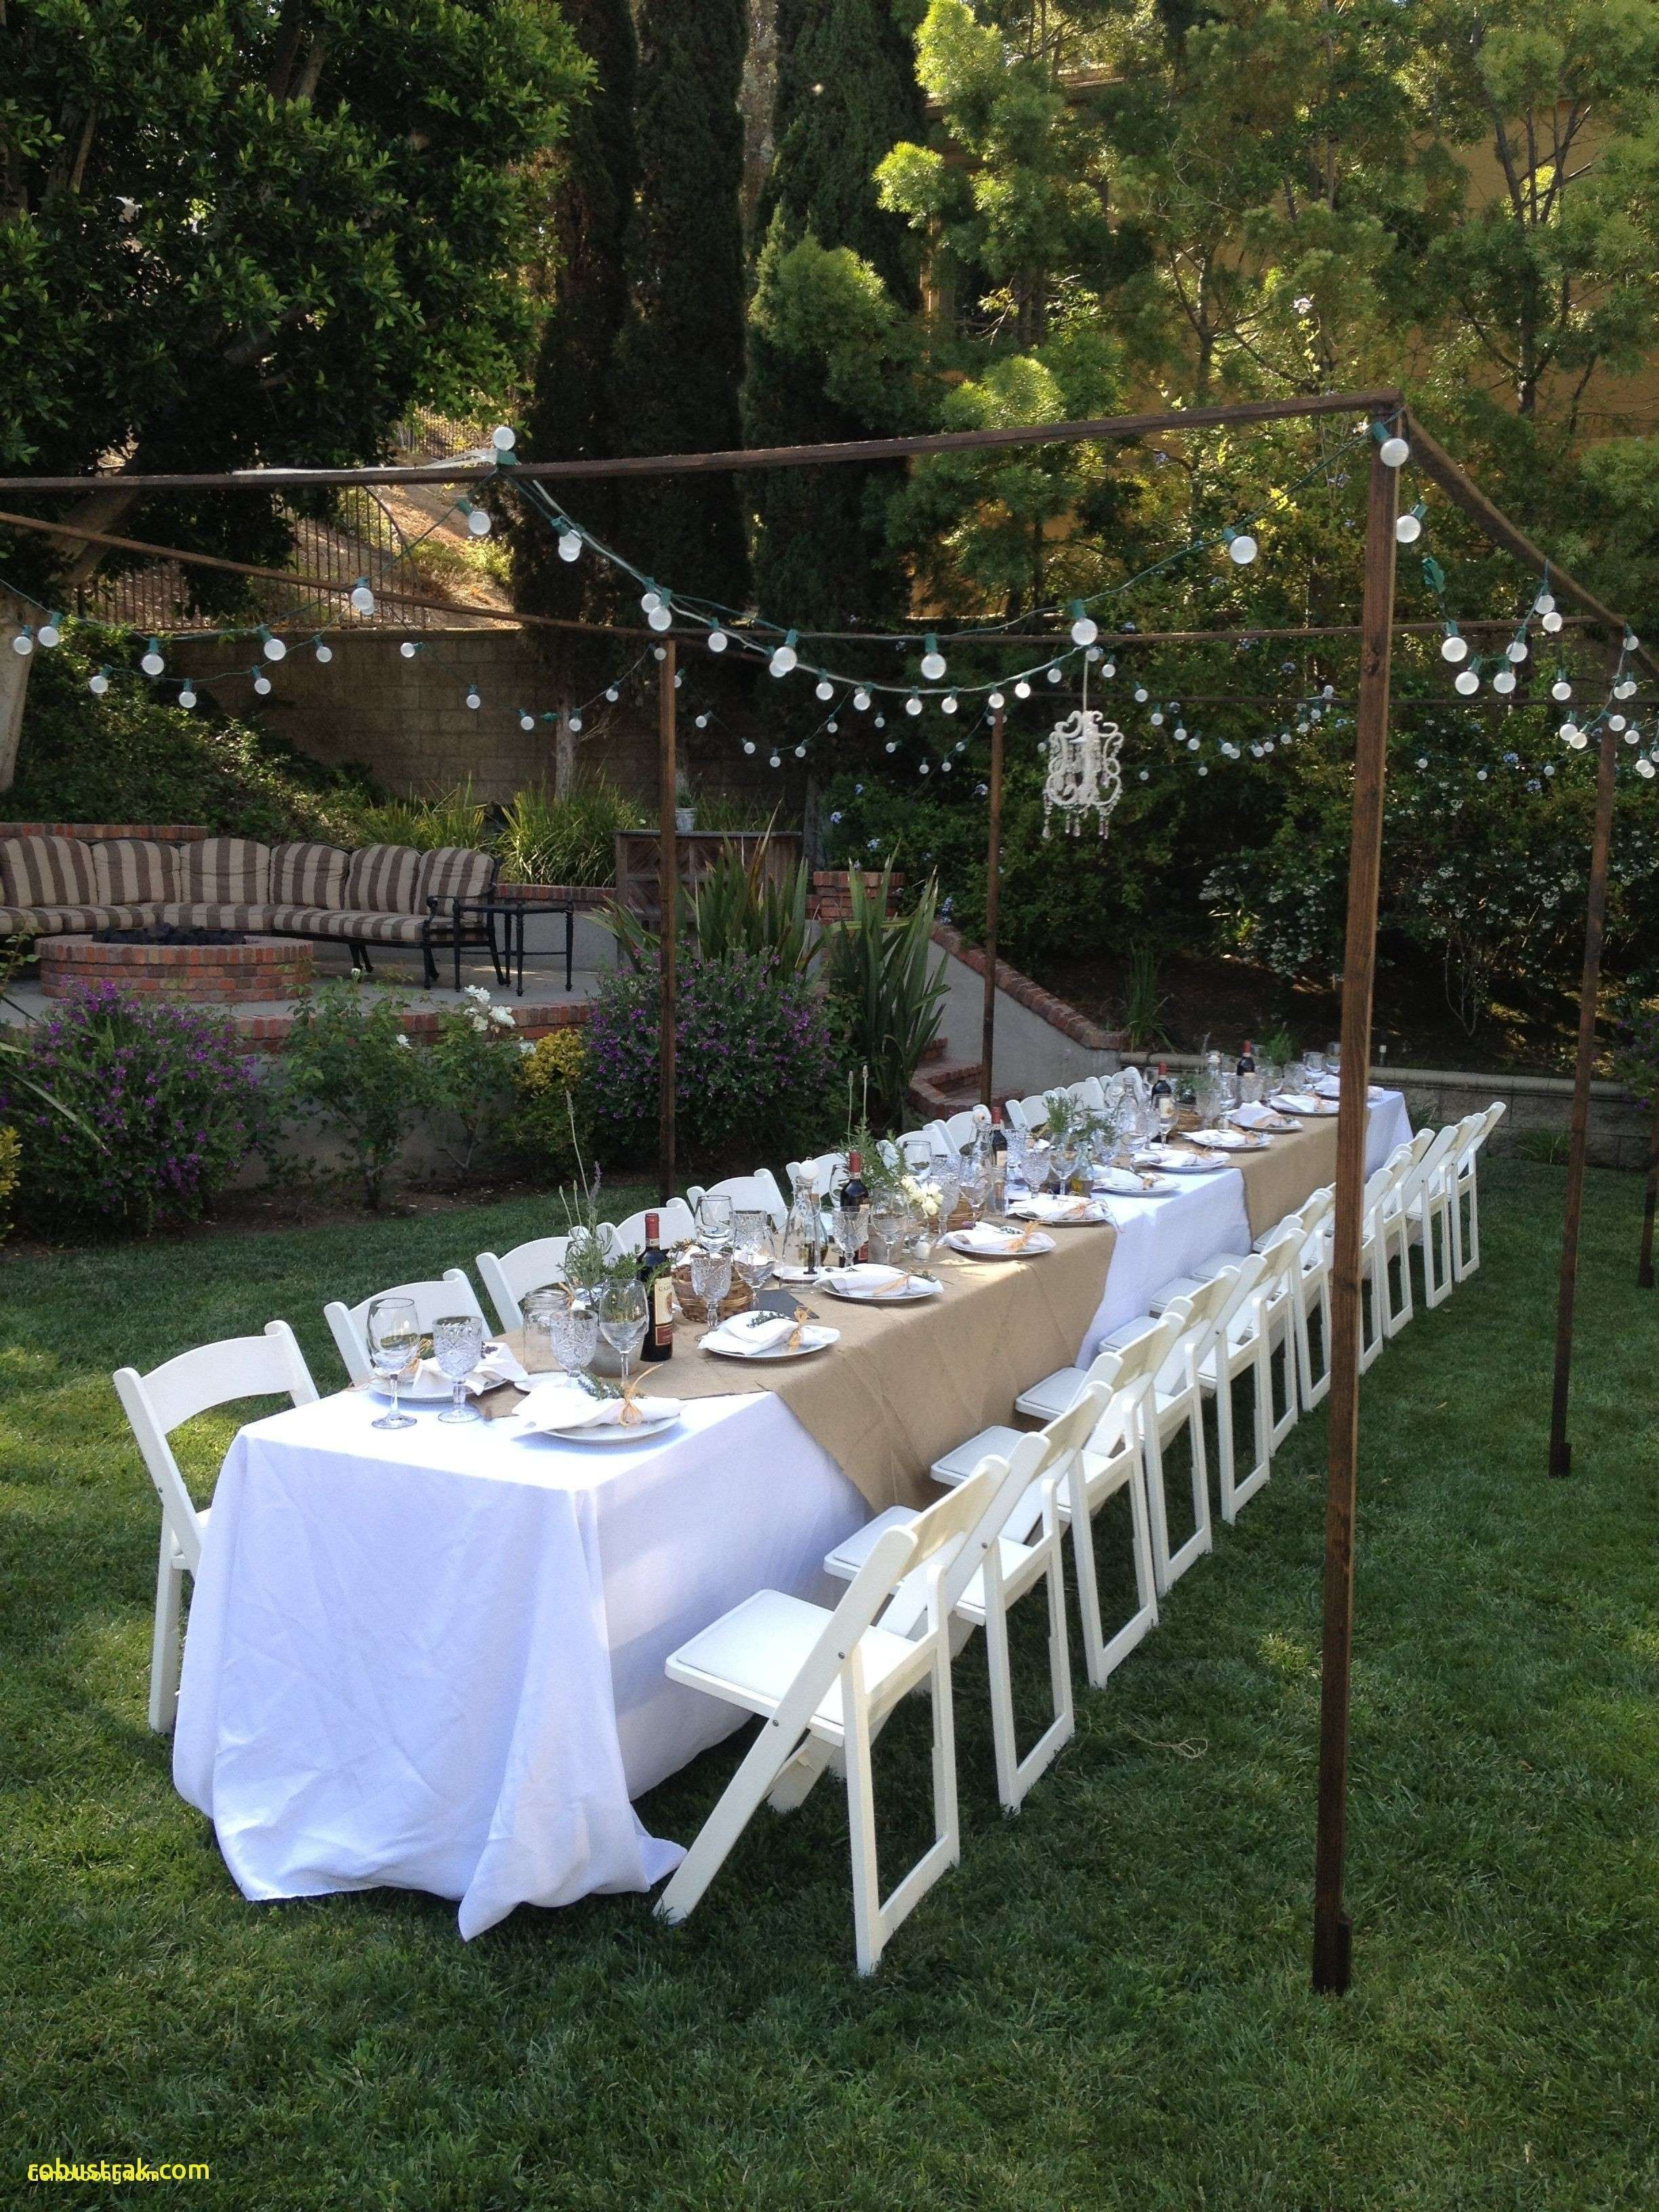 14 Genius Tricks Of How To Make Backyard Decoration Ideas Backyard Wedding Decorations Backyard Wedding Backyard Bbq Wedding Reception Diy backyard engagement party